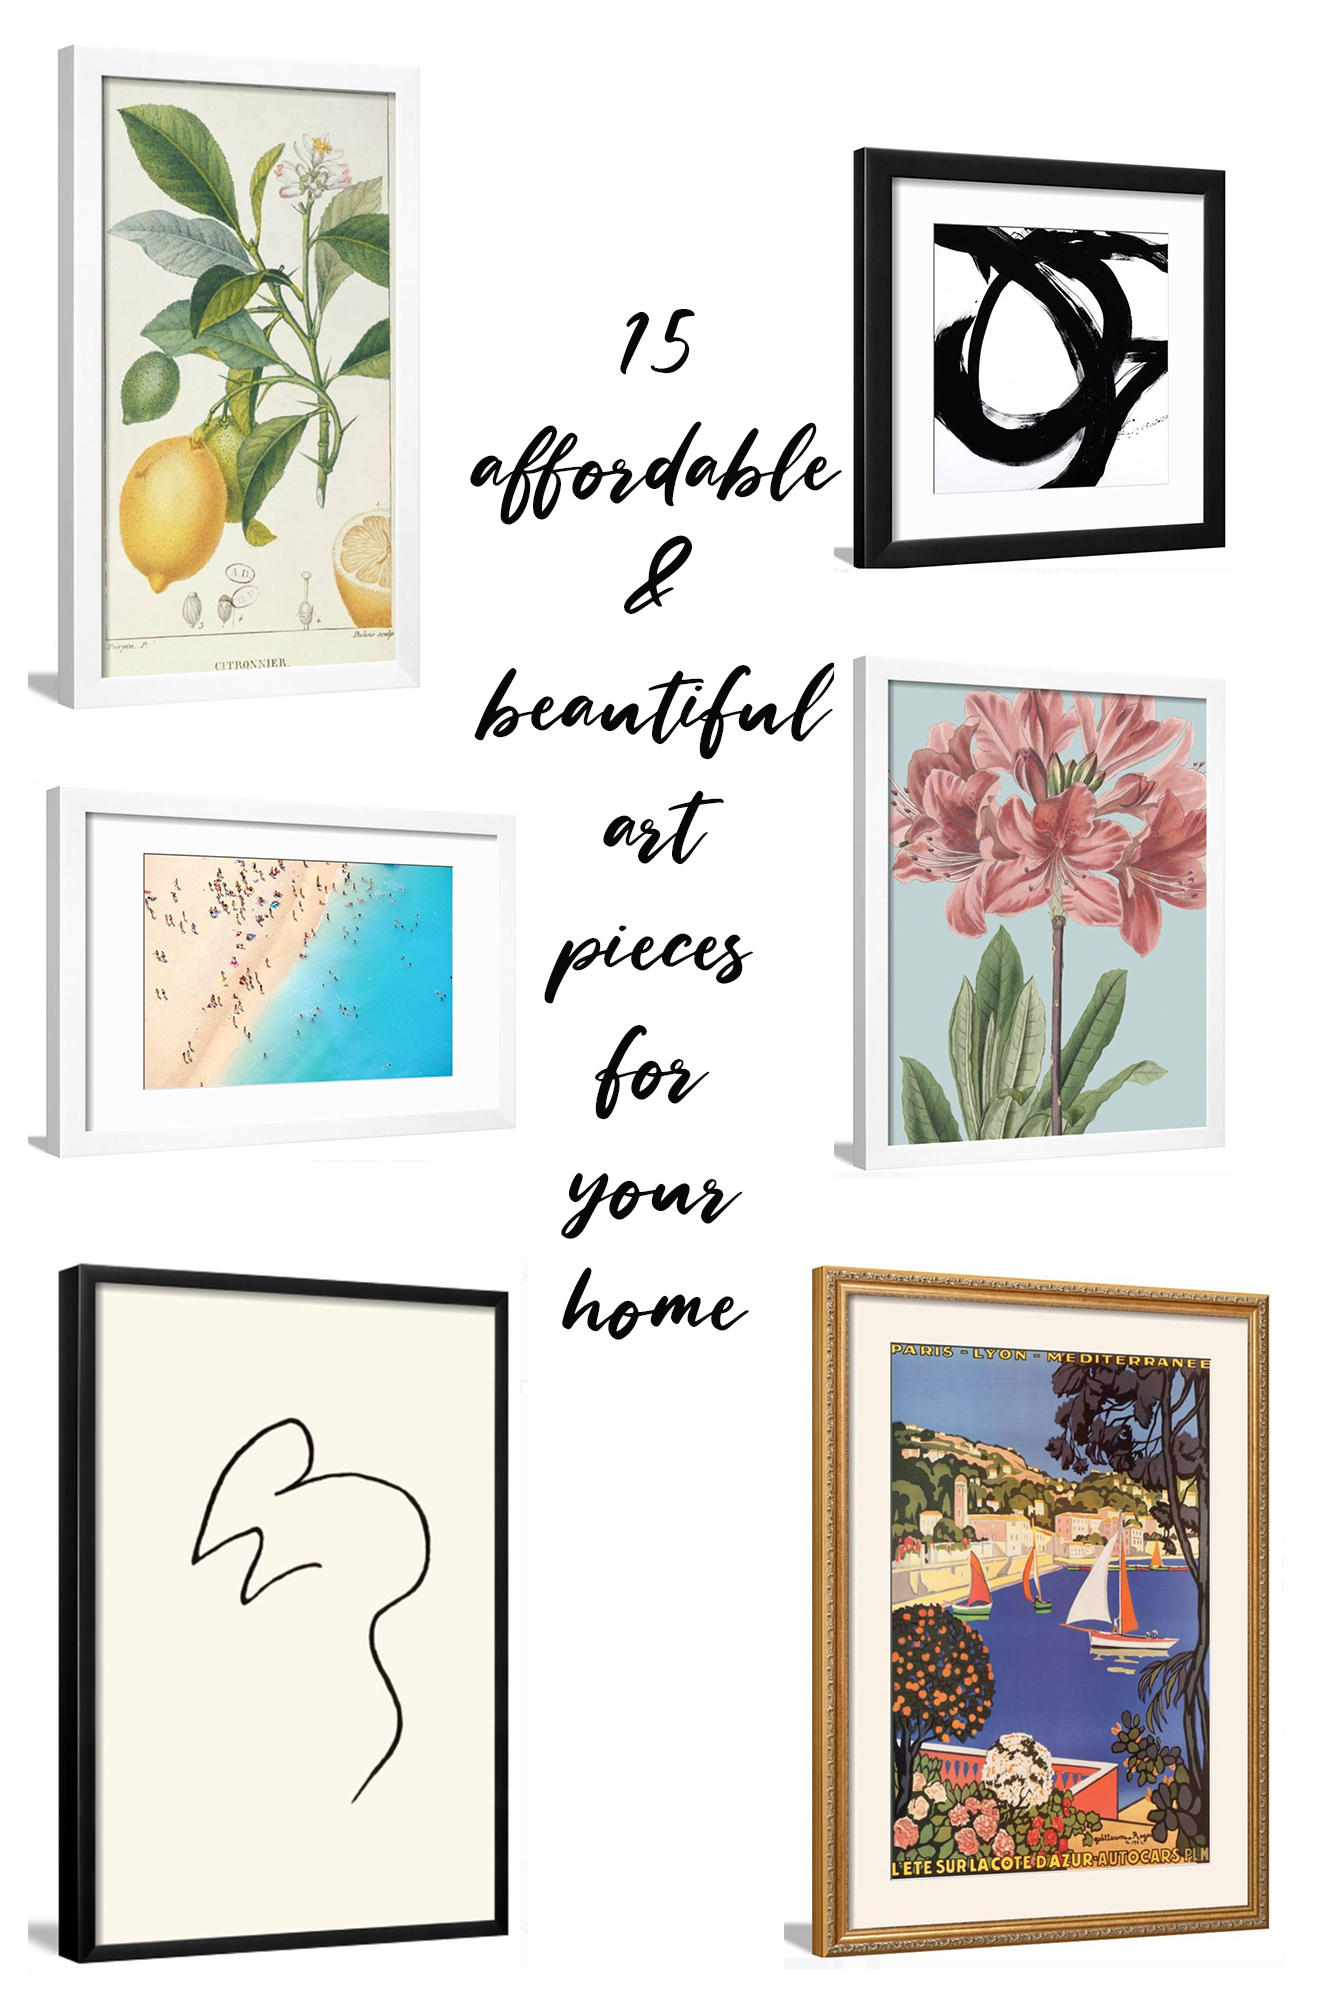 15 Stylish and Affordable Art Pieces For Your Home - Walmart has thousands of some of the prettiest prints, framed art, and more. I rounded up the best!